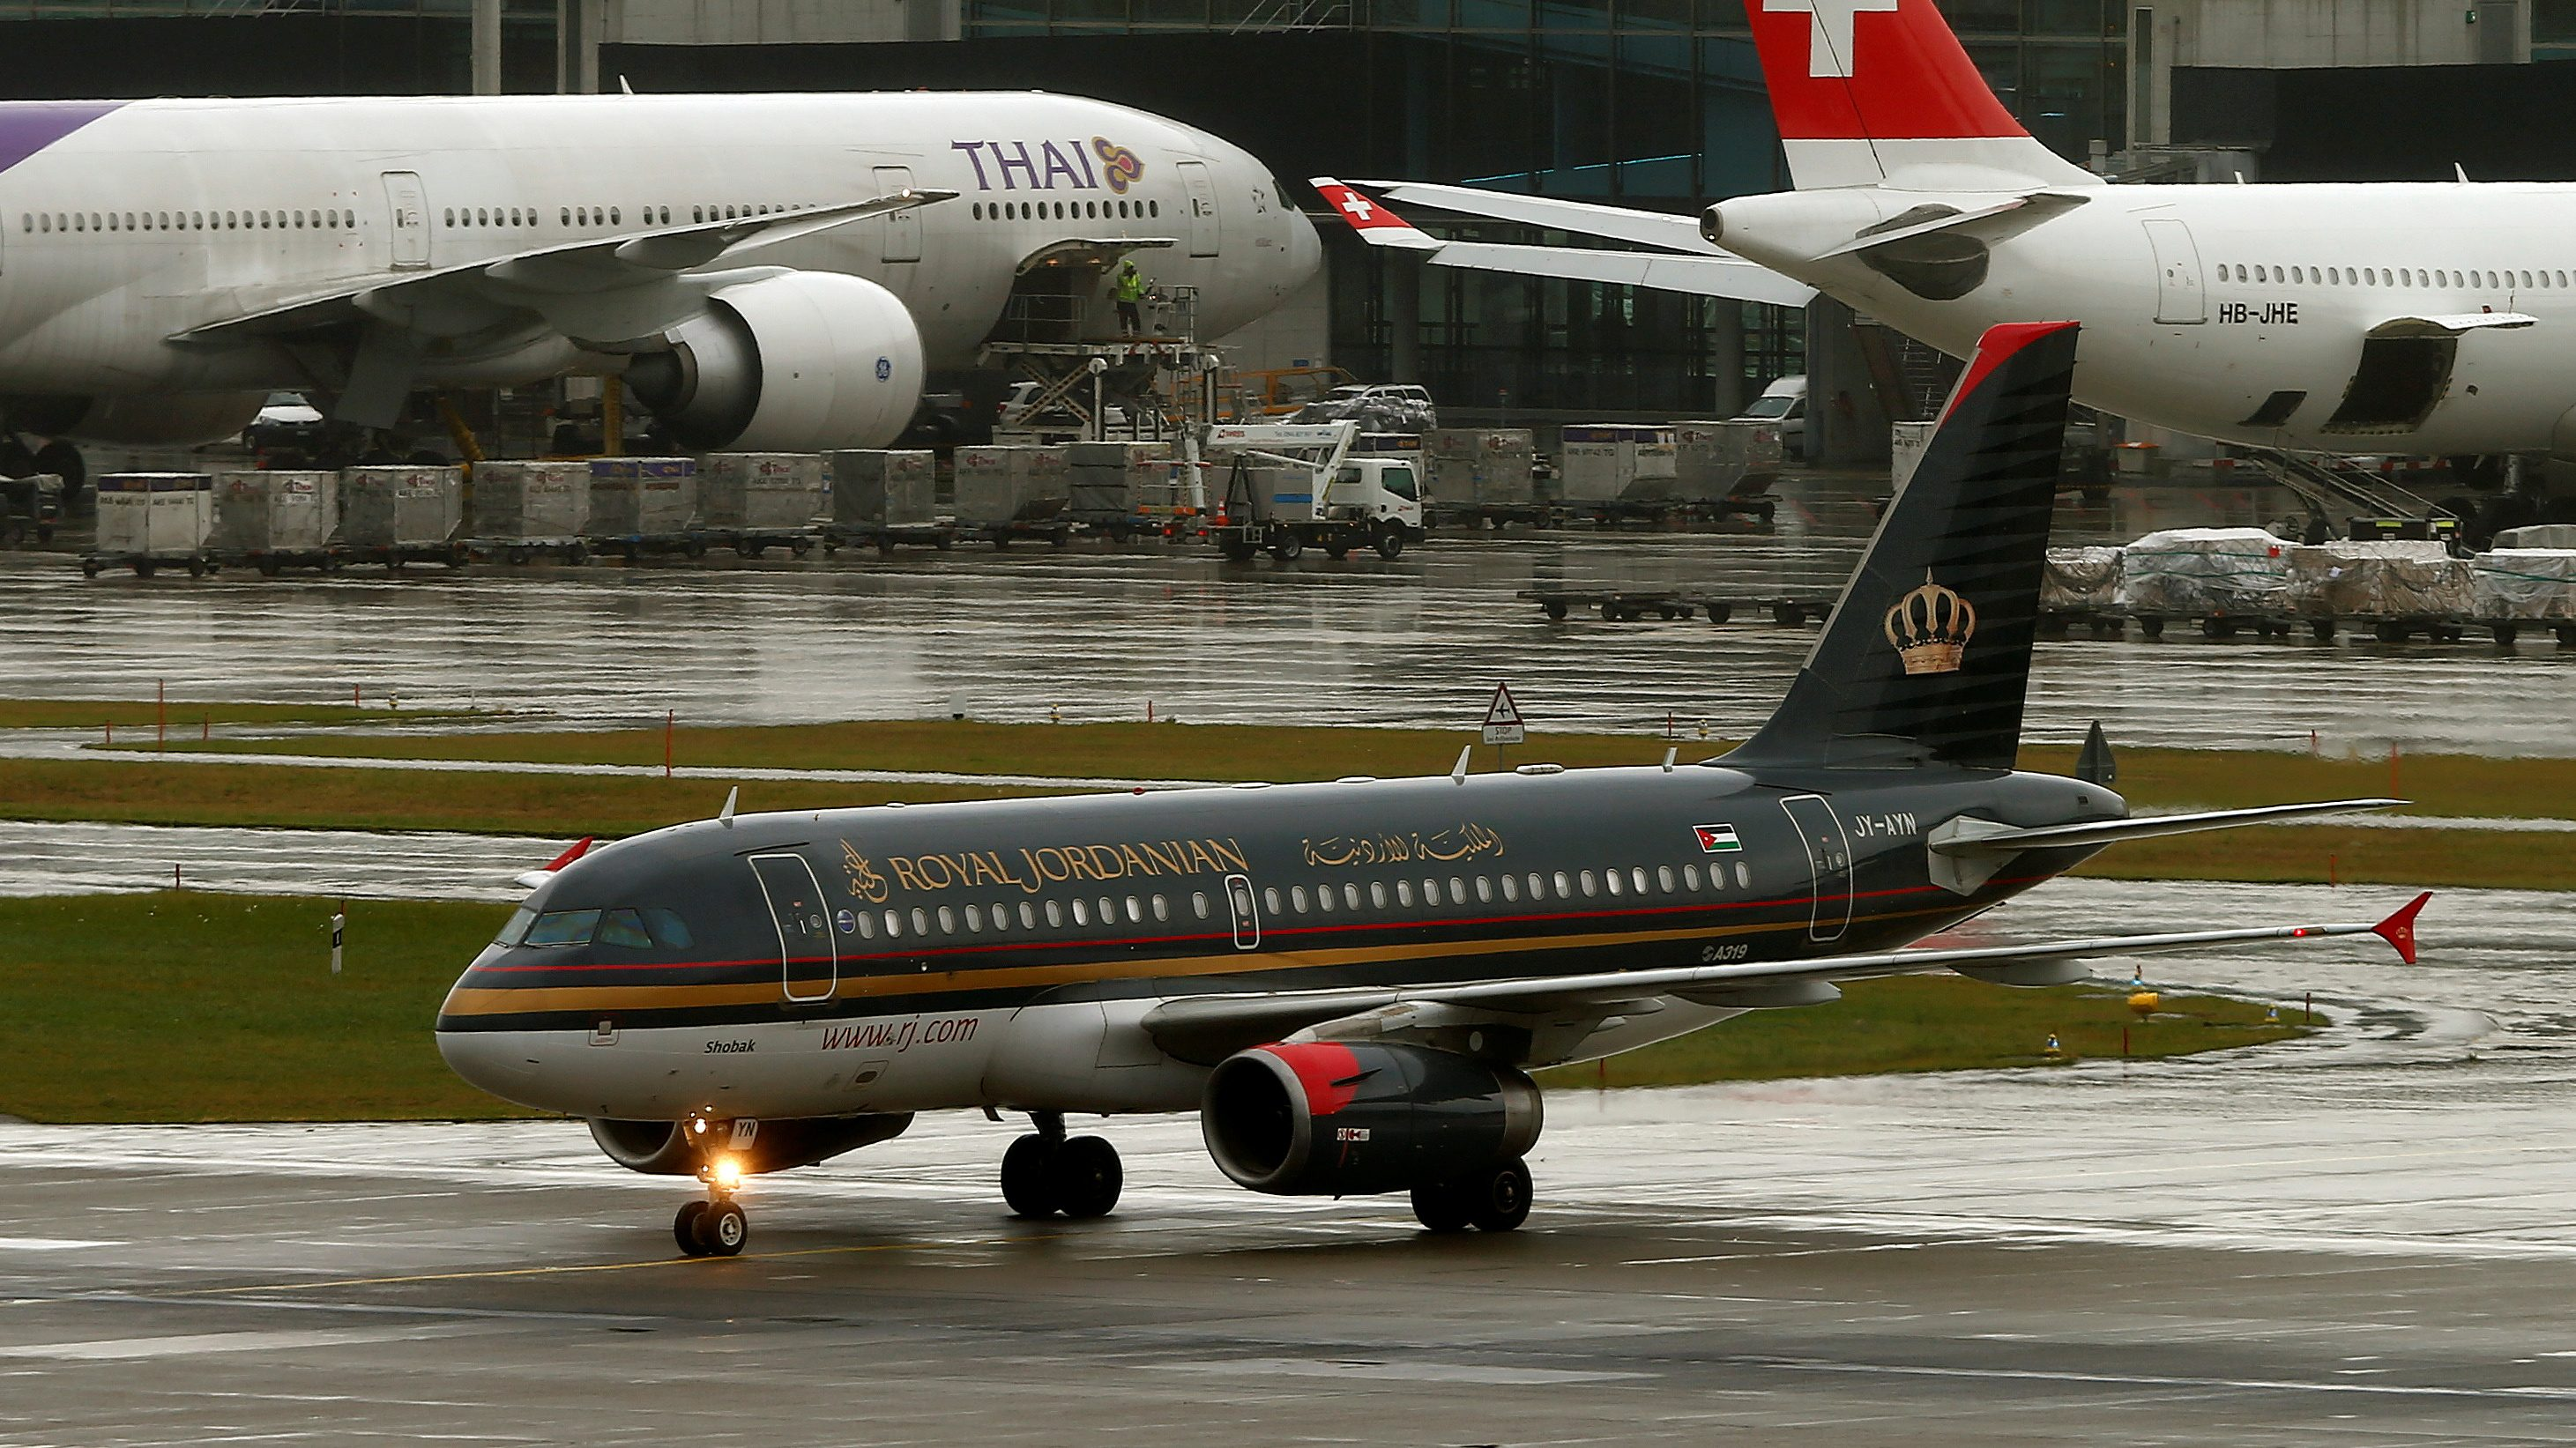 An Airbus A319-132 aircraft of Royal Jordanian Airlines is seen at Zurich airport, Switzerland October 21, 2016.